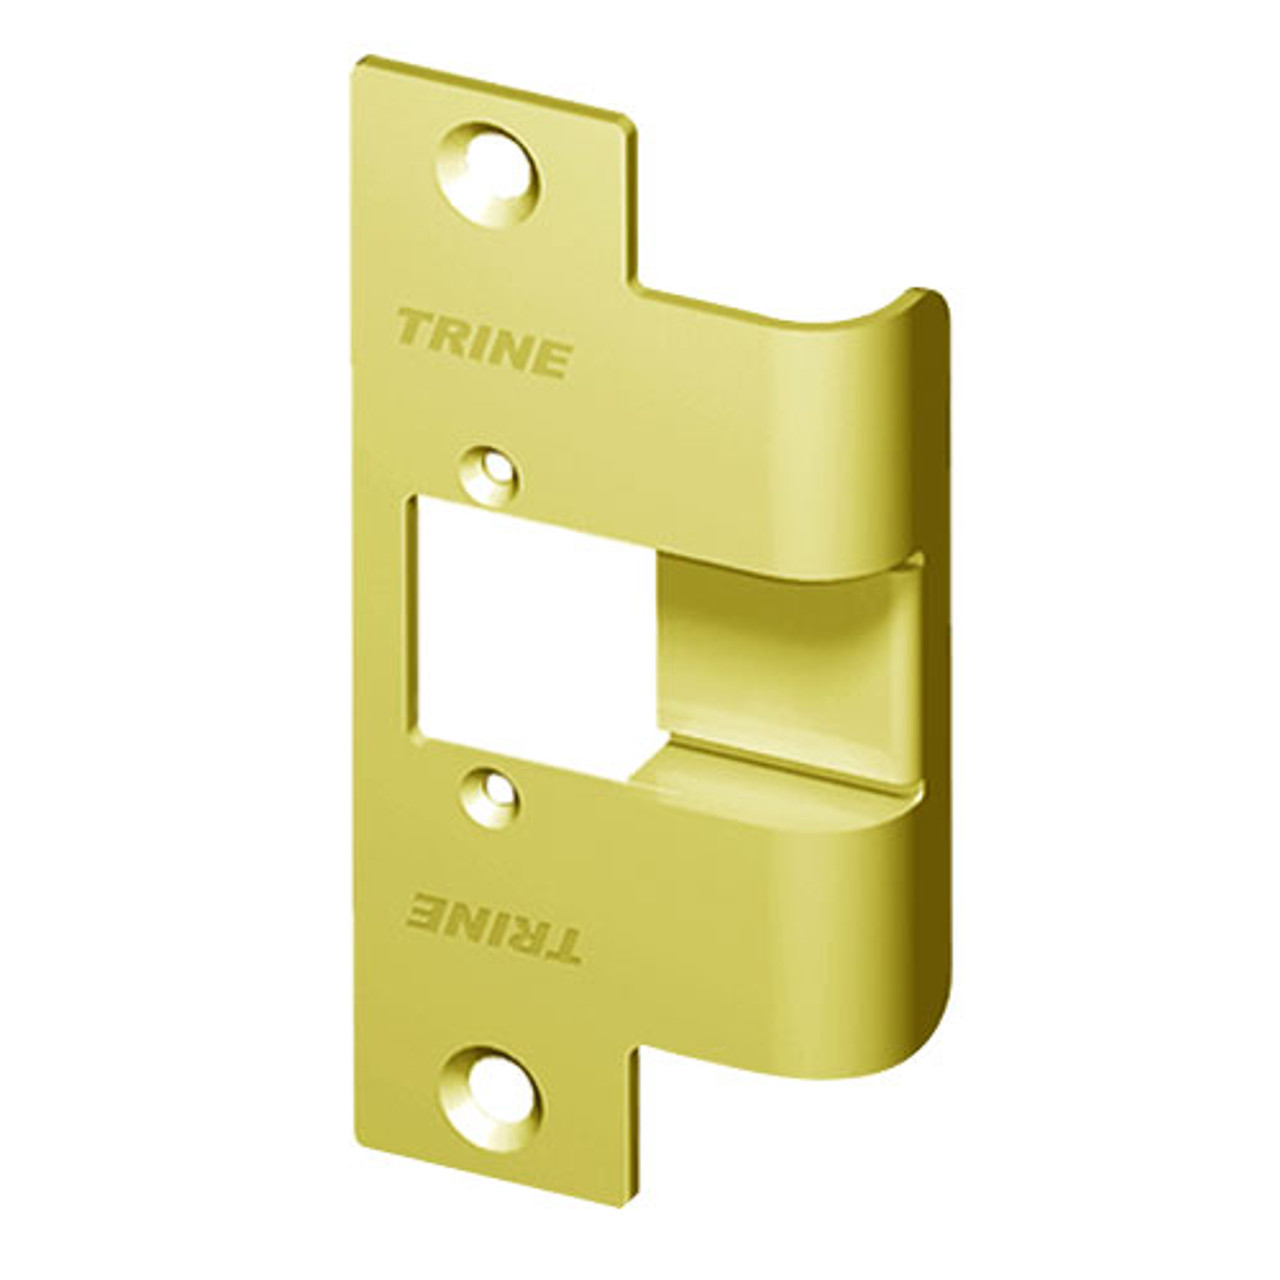 478X-375-RD-US3 Trine 3000 Series Asa Strike Extended Faceplate with Radiused Corners in Bright Brass Finish